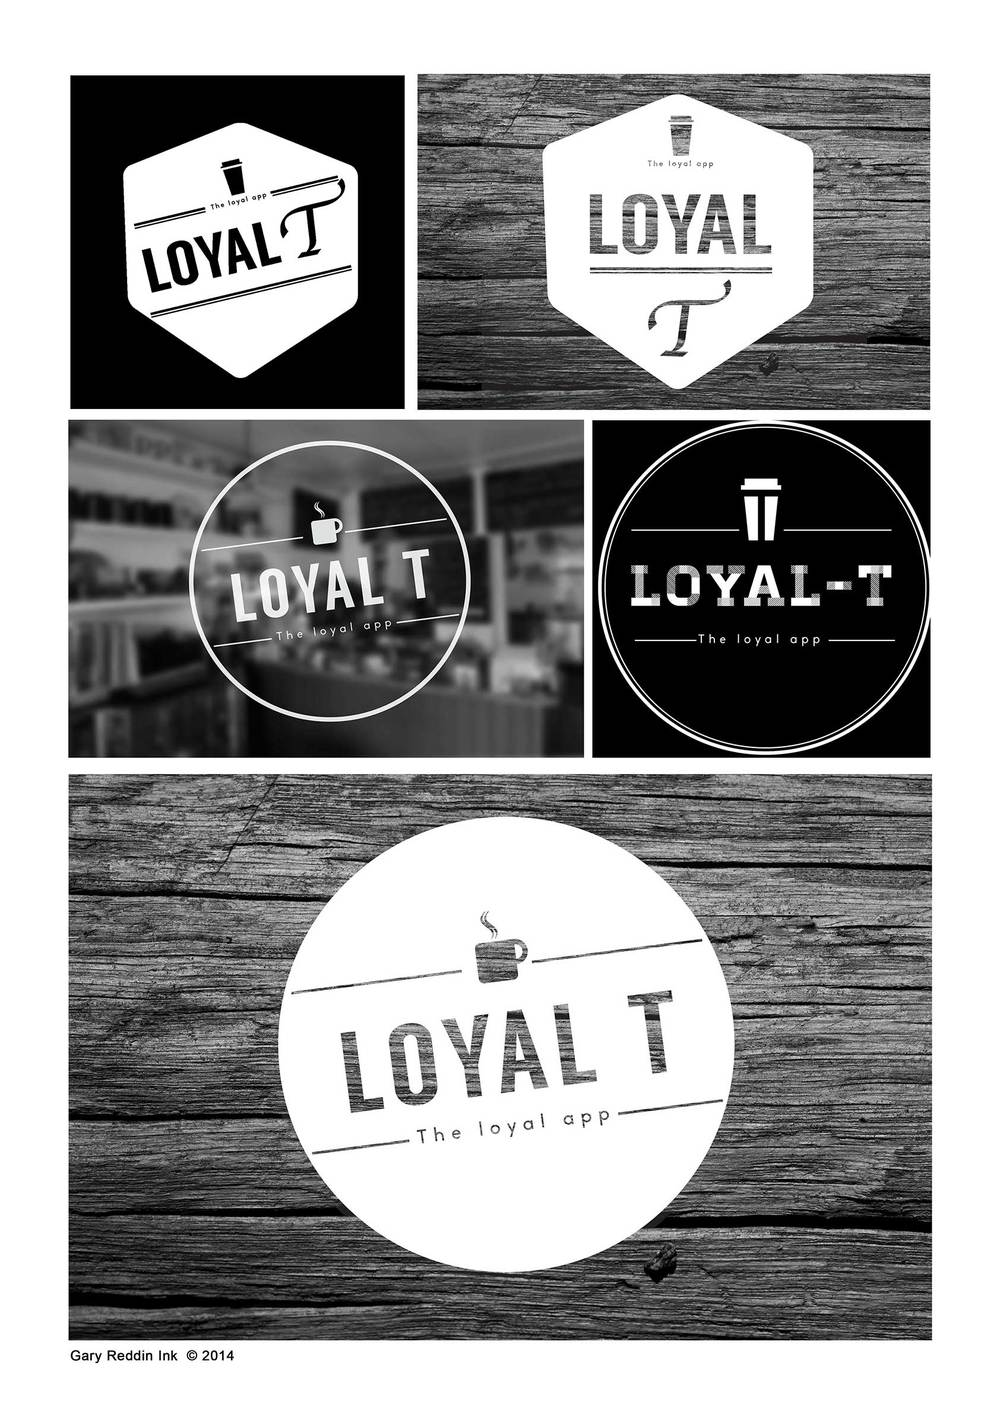 The new logo for 'Loyal-T' an awesome company developing ingenious apps check them outhttp://loyalt.net/